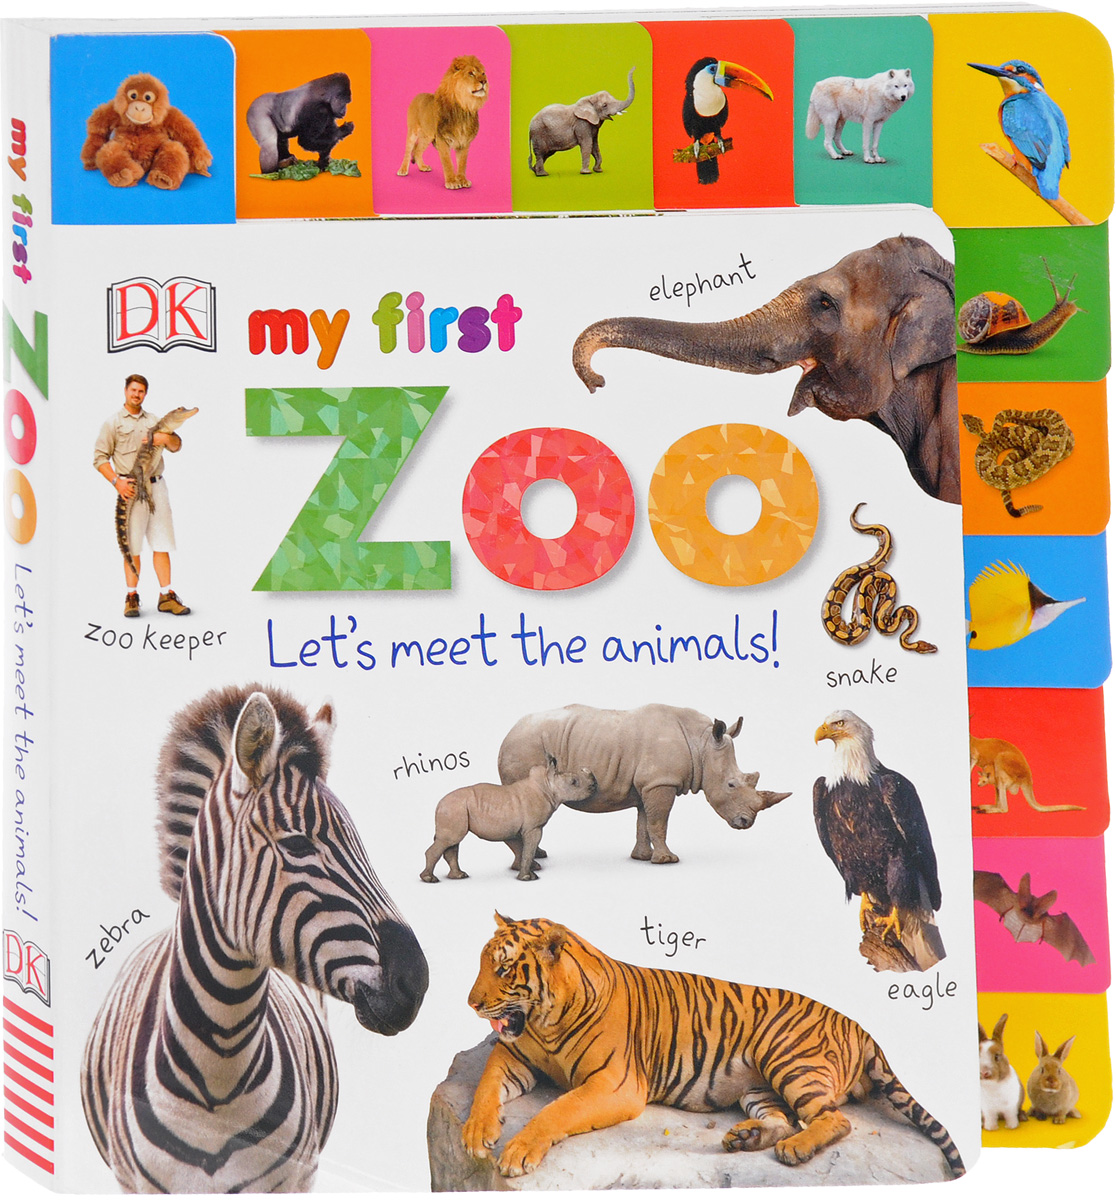 My First Zoo: Let's Meet the Animals! spot dobble find it board game for children fun with family gathering the animals paper quality card